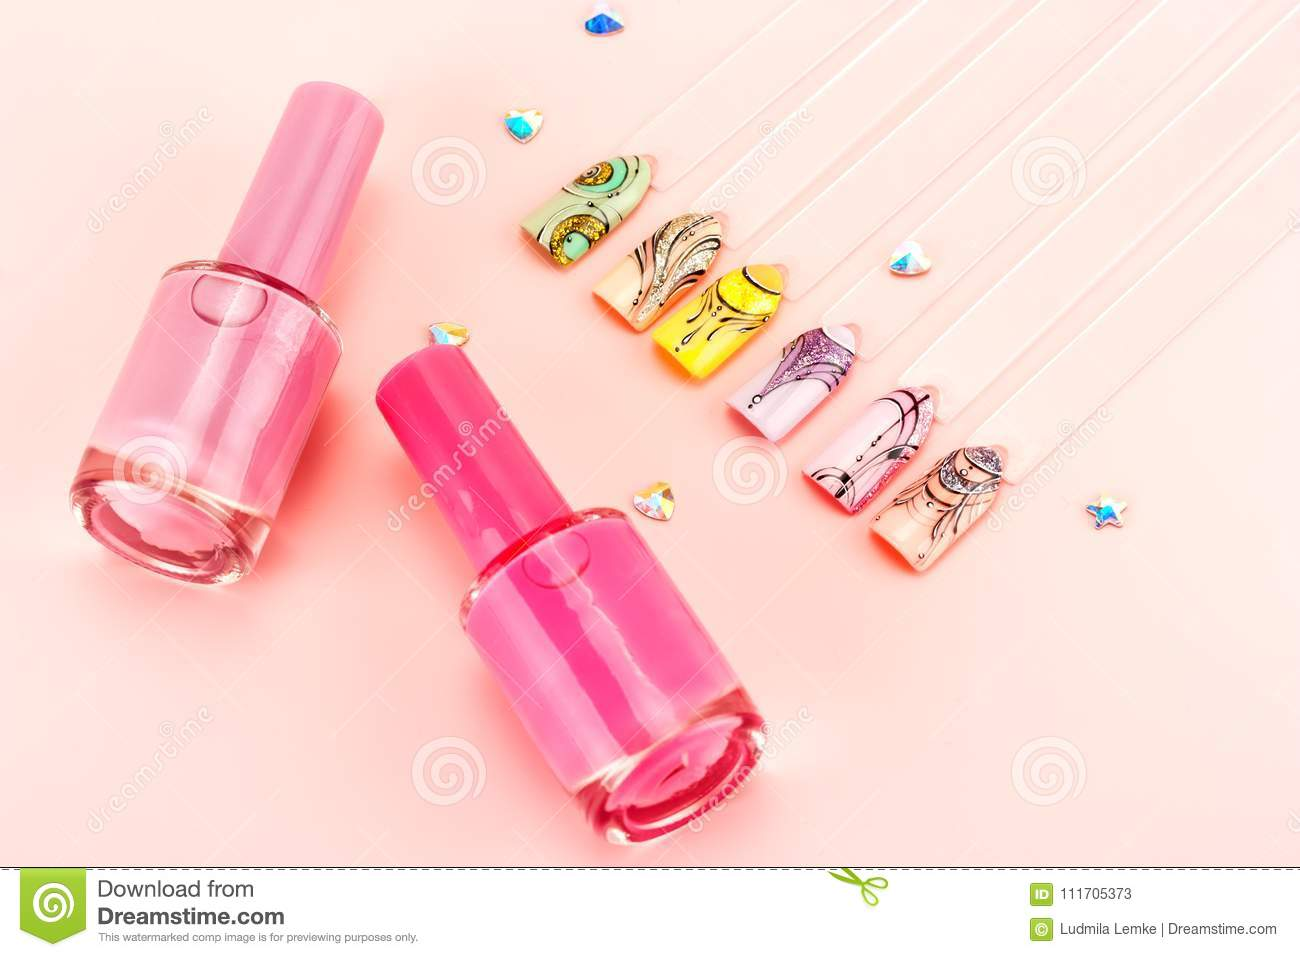 Nail designs on tips.